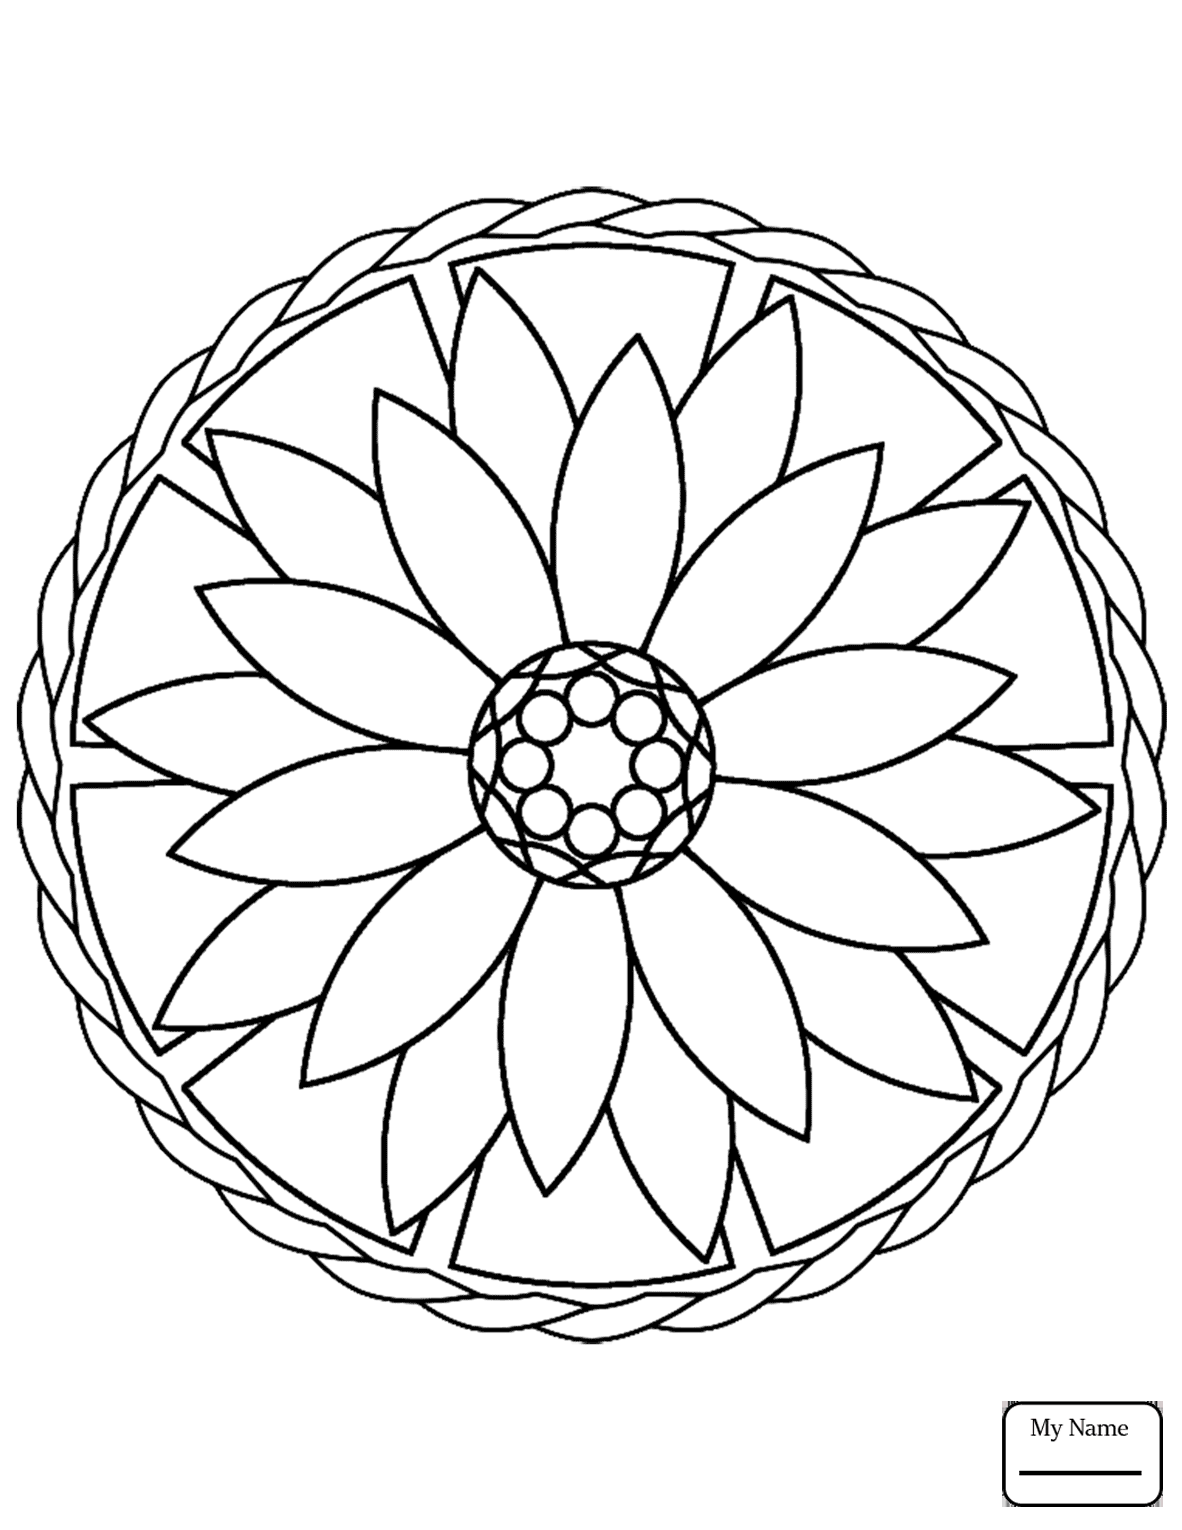 Easy Mandala Coloring Pages For Kids With Stars Arts Inside